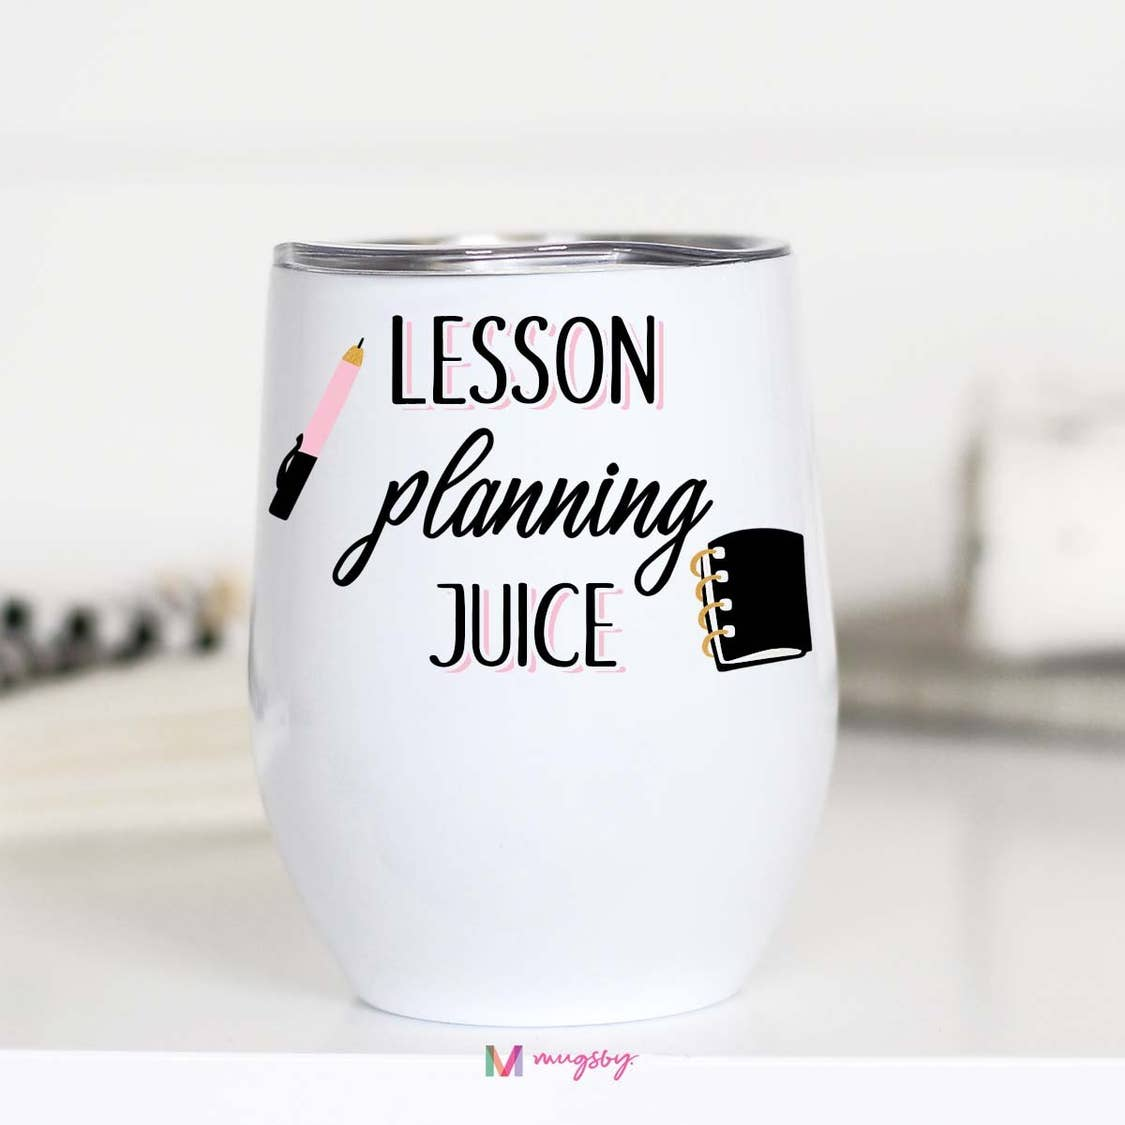 LESSON PLANNING JUICE WINE CUP-TUMBLER-MODE-Couture-Boutique-Womens-Clothing